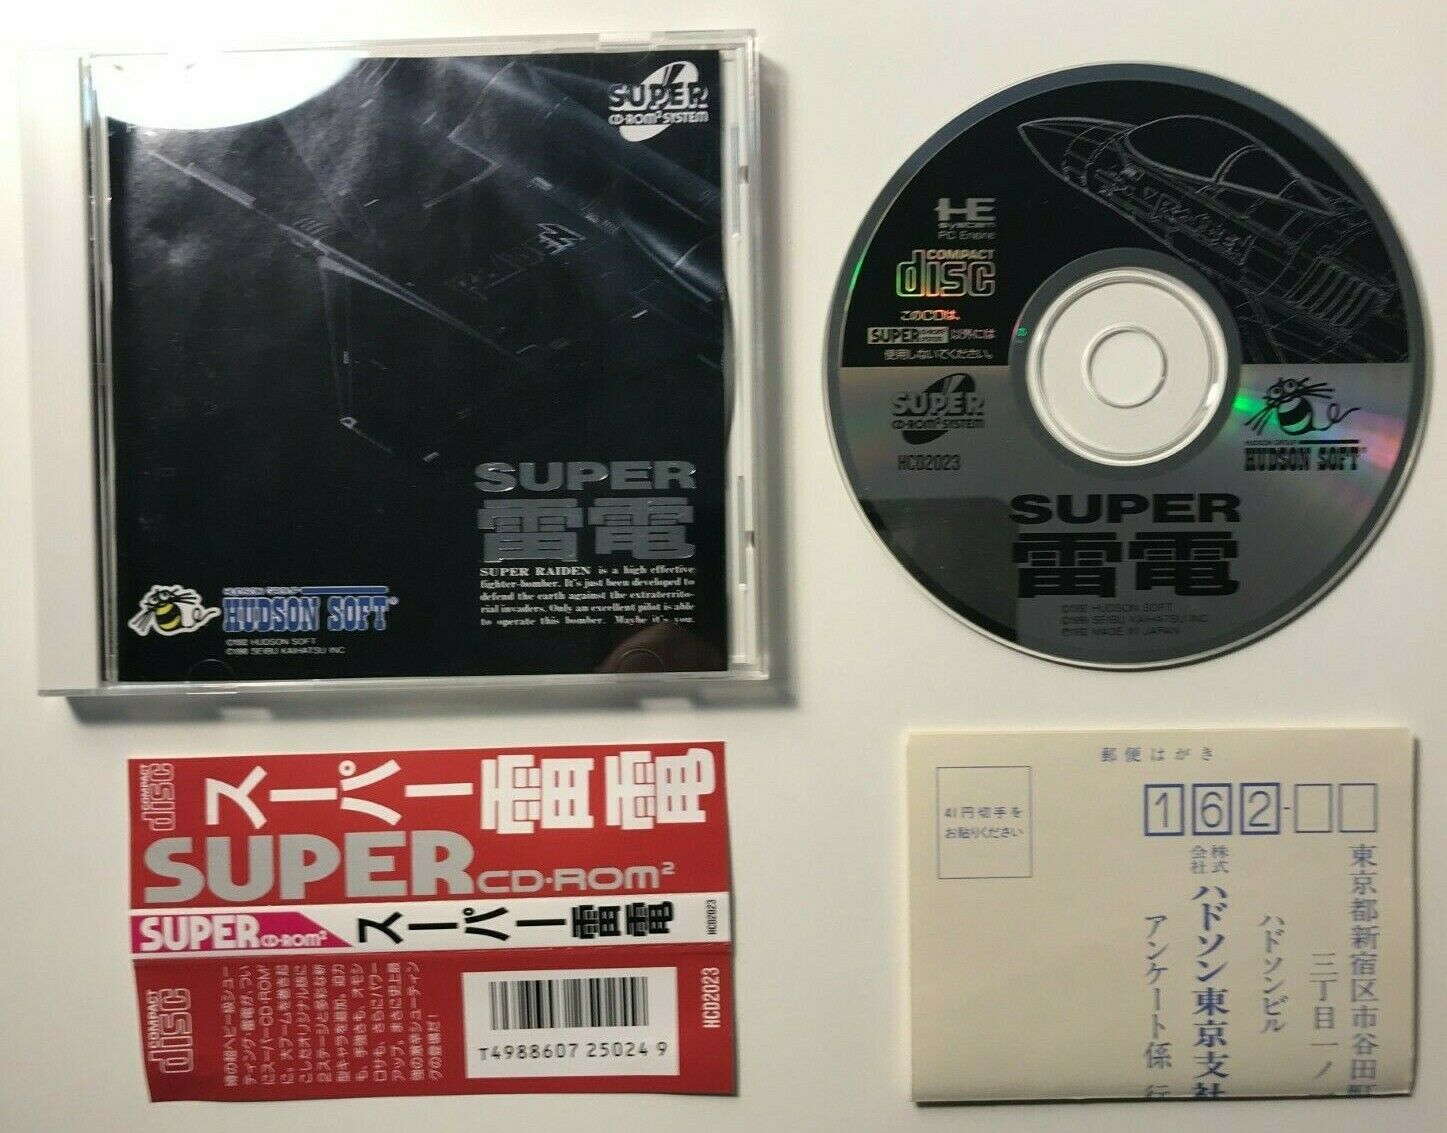 Confirmed Working - Super Raiden Complete for PC Engine Super CD-ROM2 System